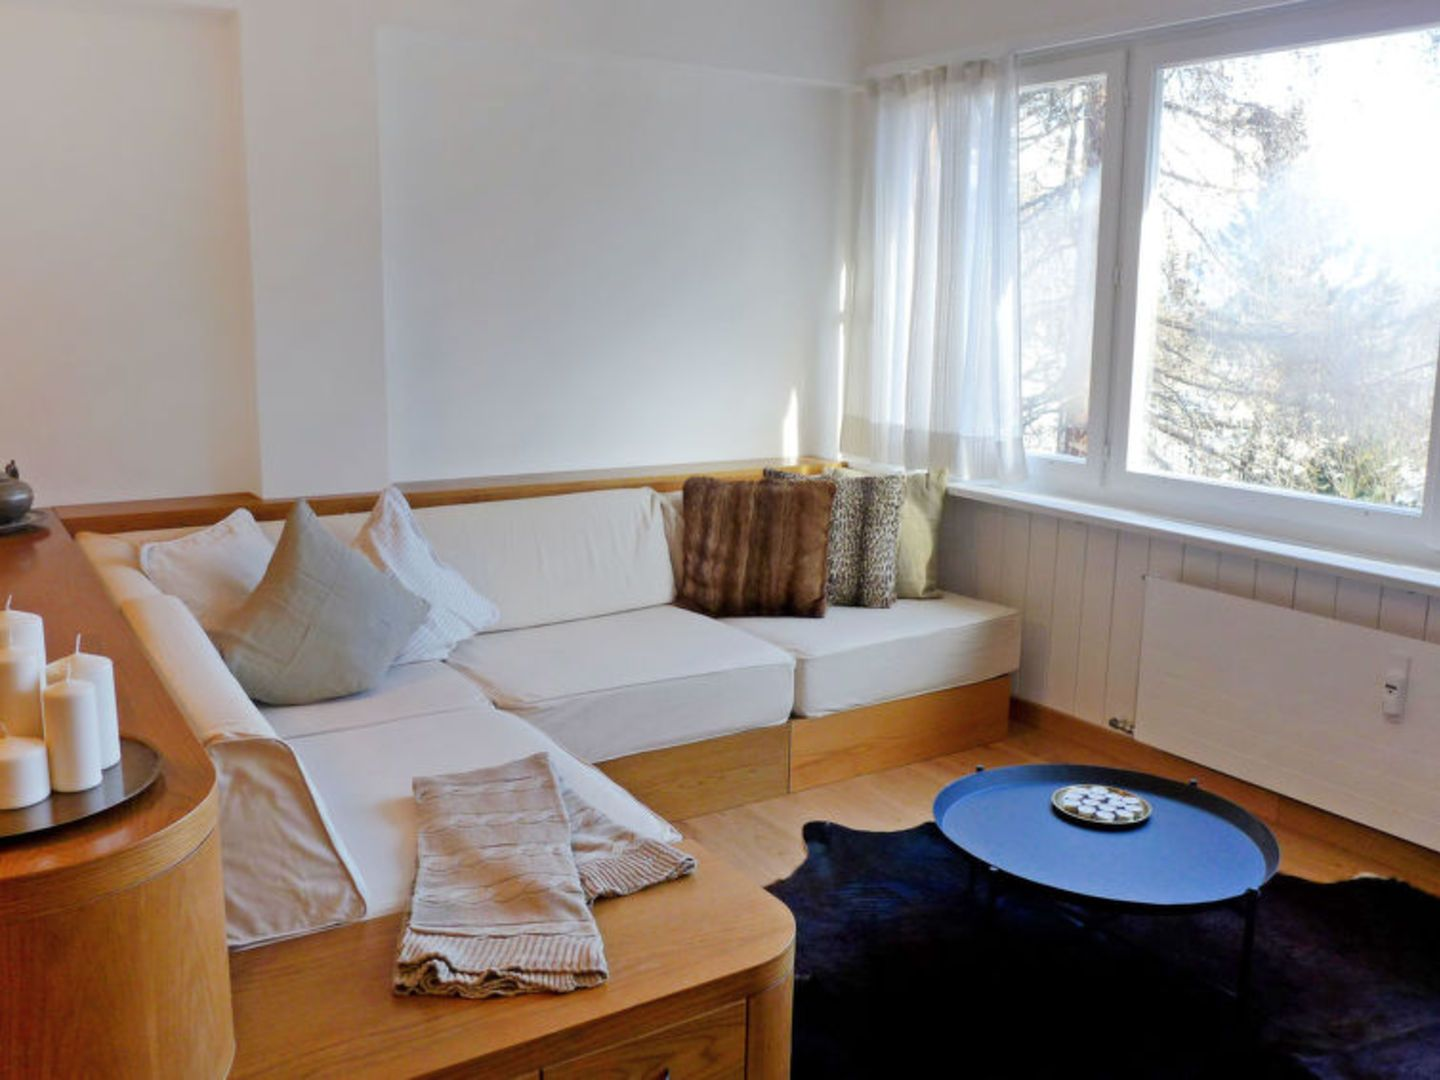 Lovely 2 bedroom apartment fot rent